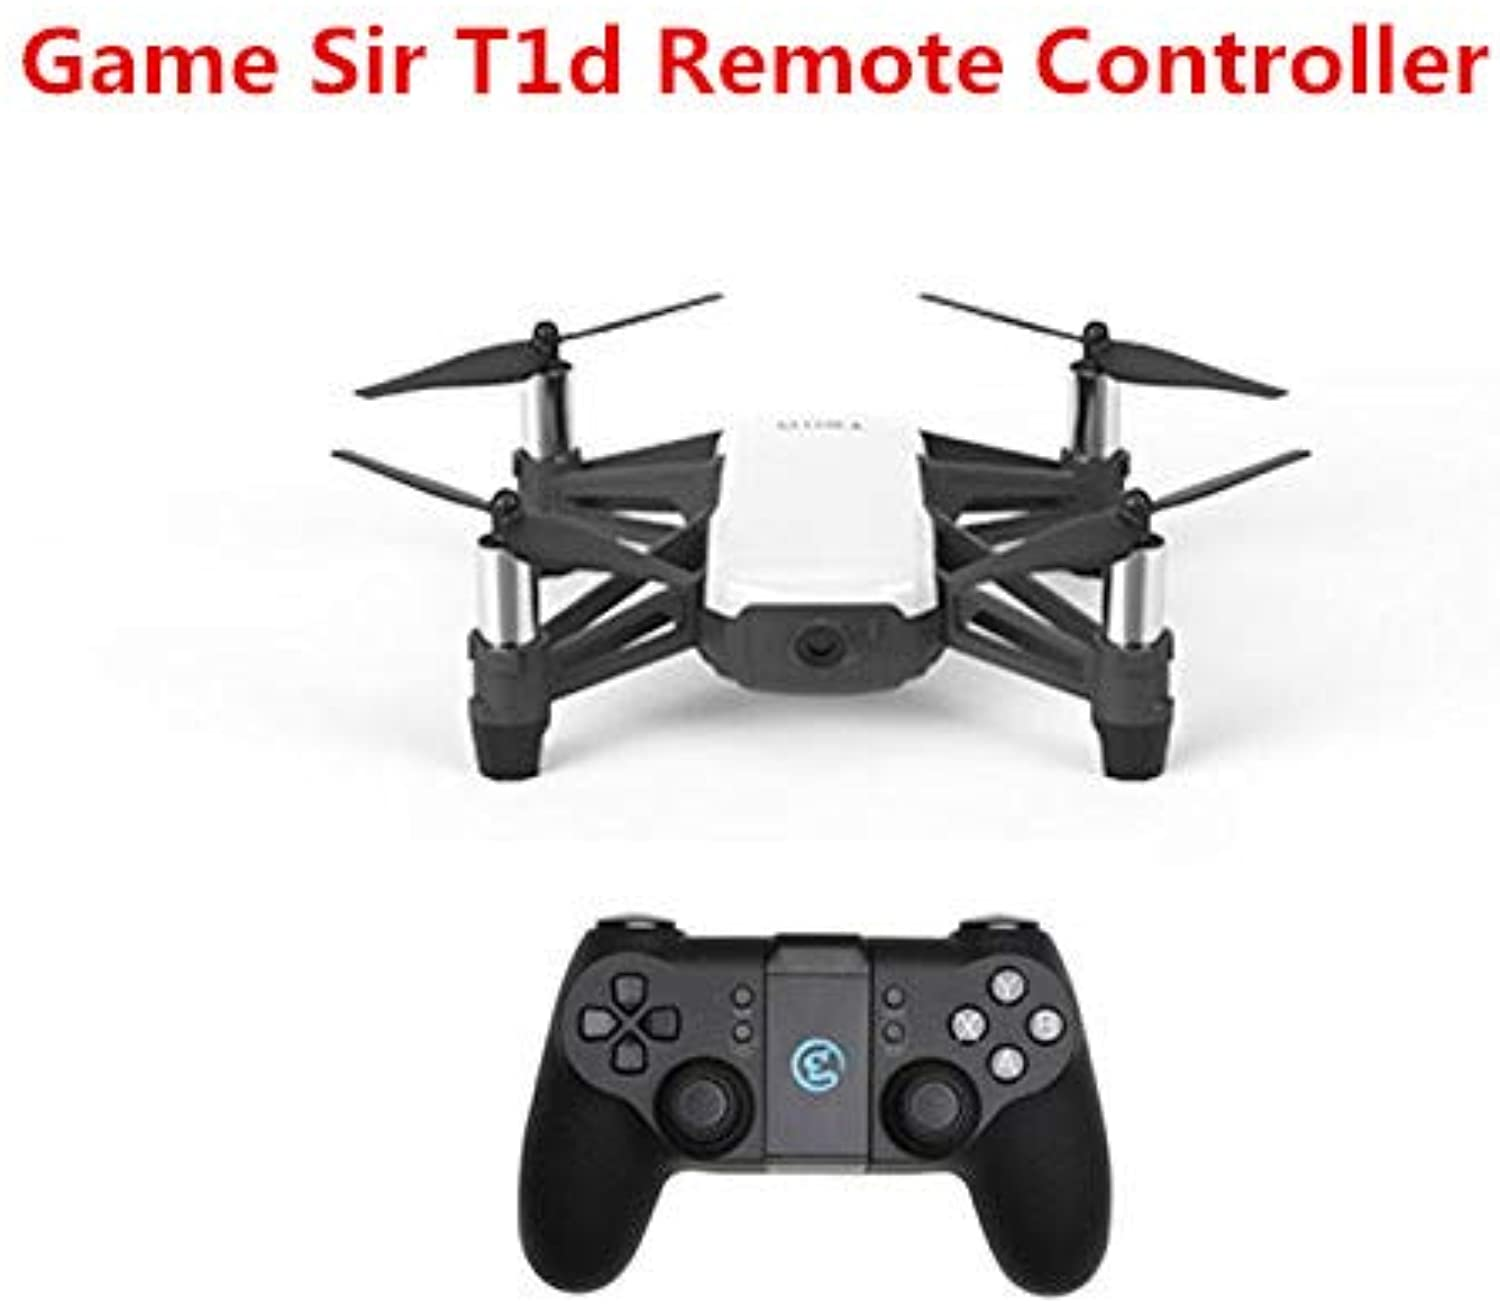 RONSHIN Game Game Game Sir T1d Remote Controller Joystick for DJI Tello Drone ios7.0+ Android 4.0+ 476eac